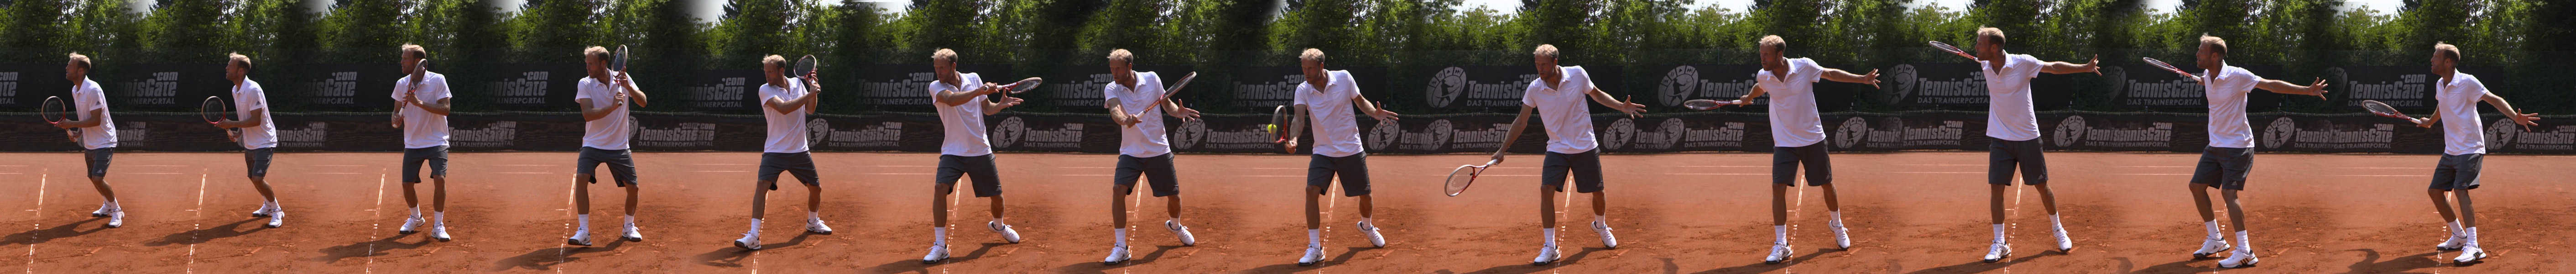 Backhand-Slice-one-handed-closed-stance-sideview-slideshow